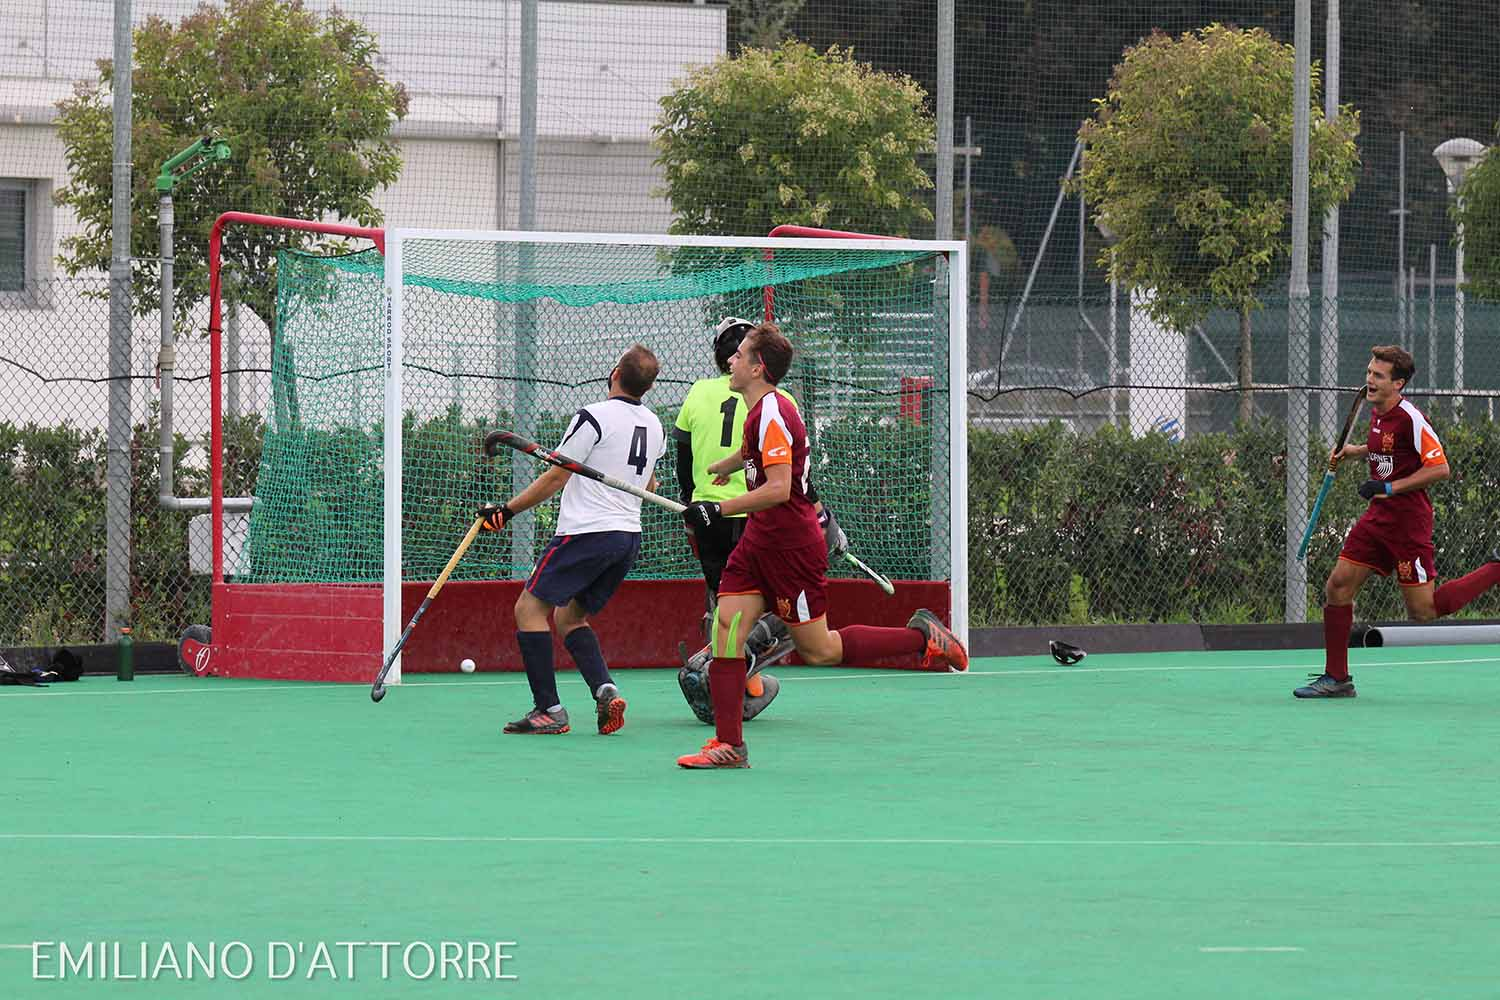 Low-Hockey Club Roma Vs Hockey Team Bologna 6-1(1zs) (Serie A1) 3.11.2019